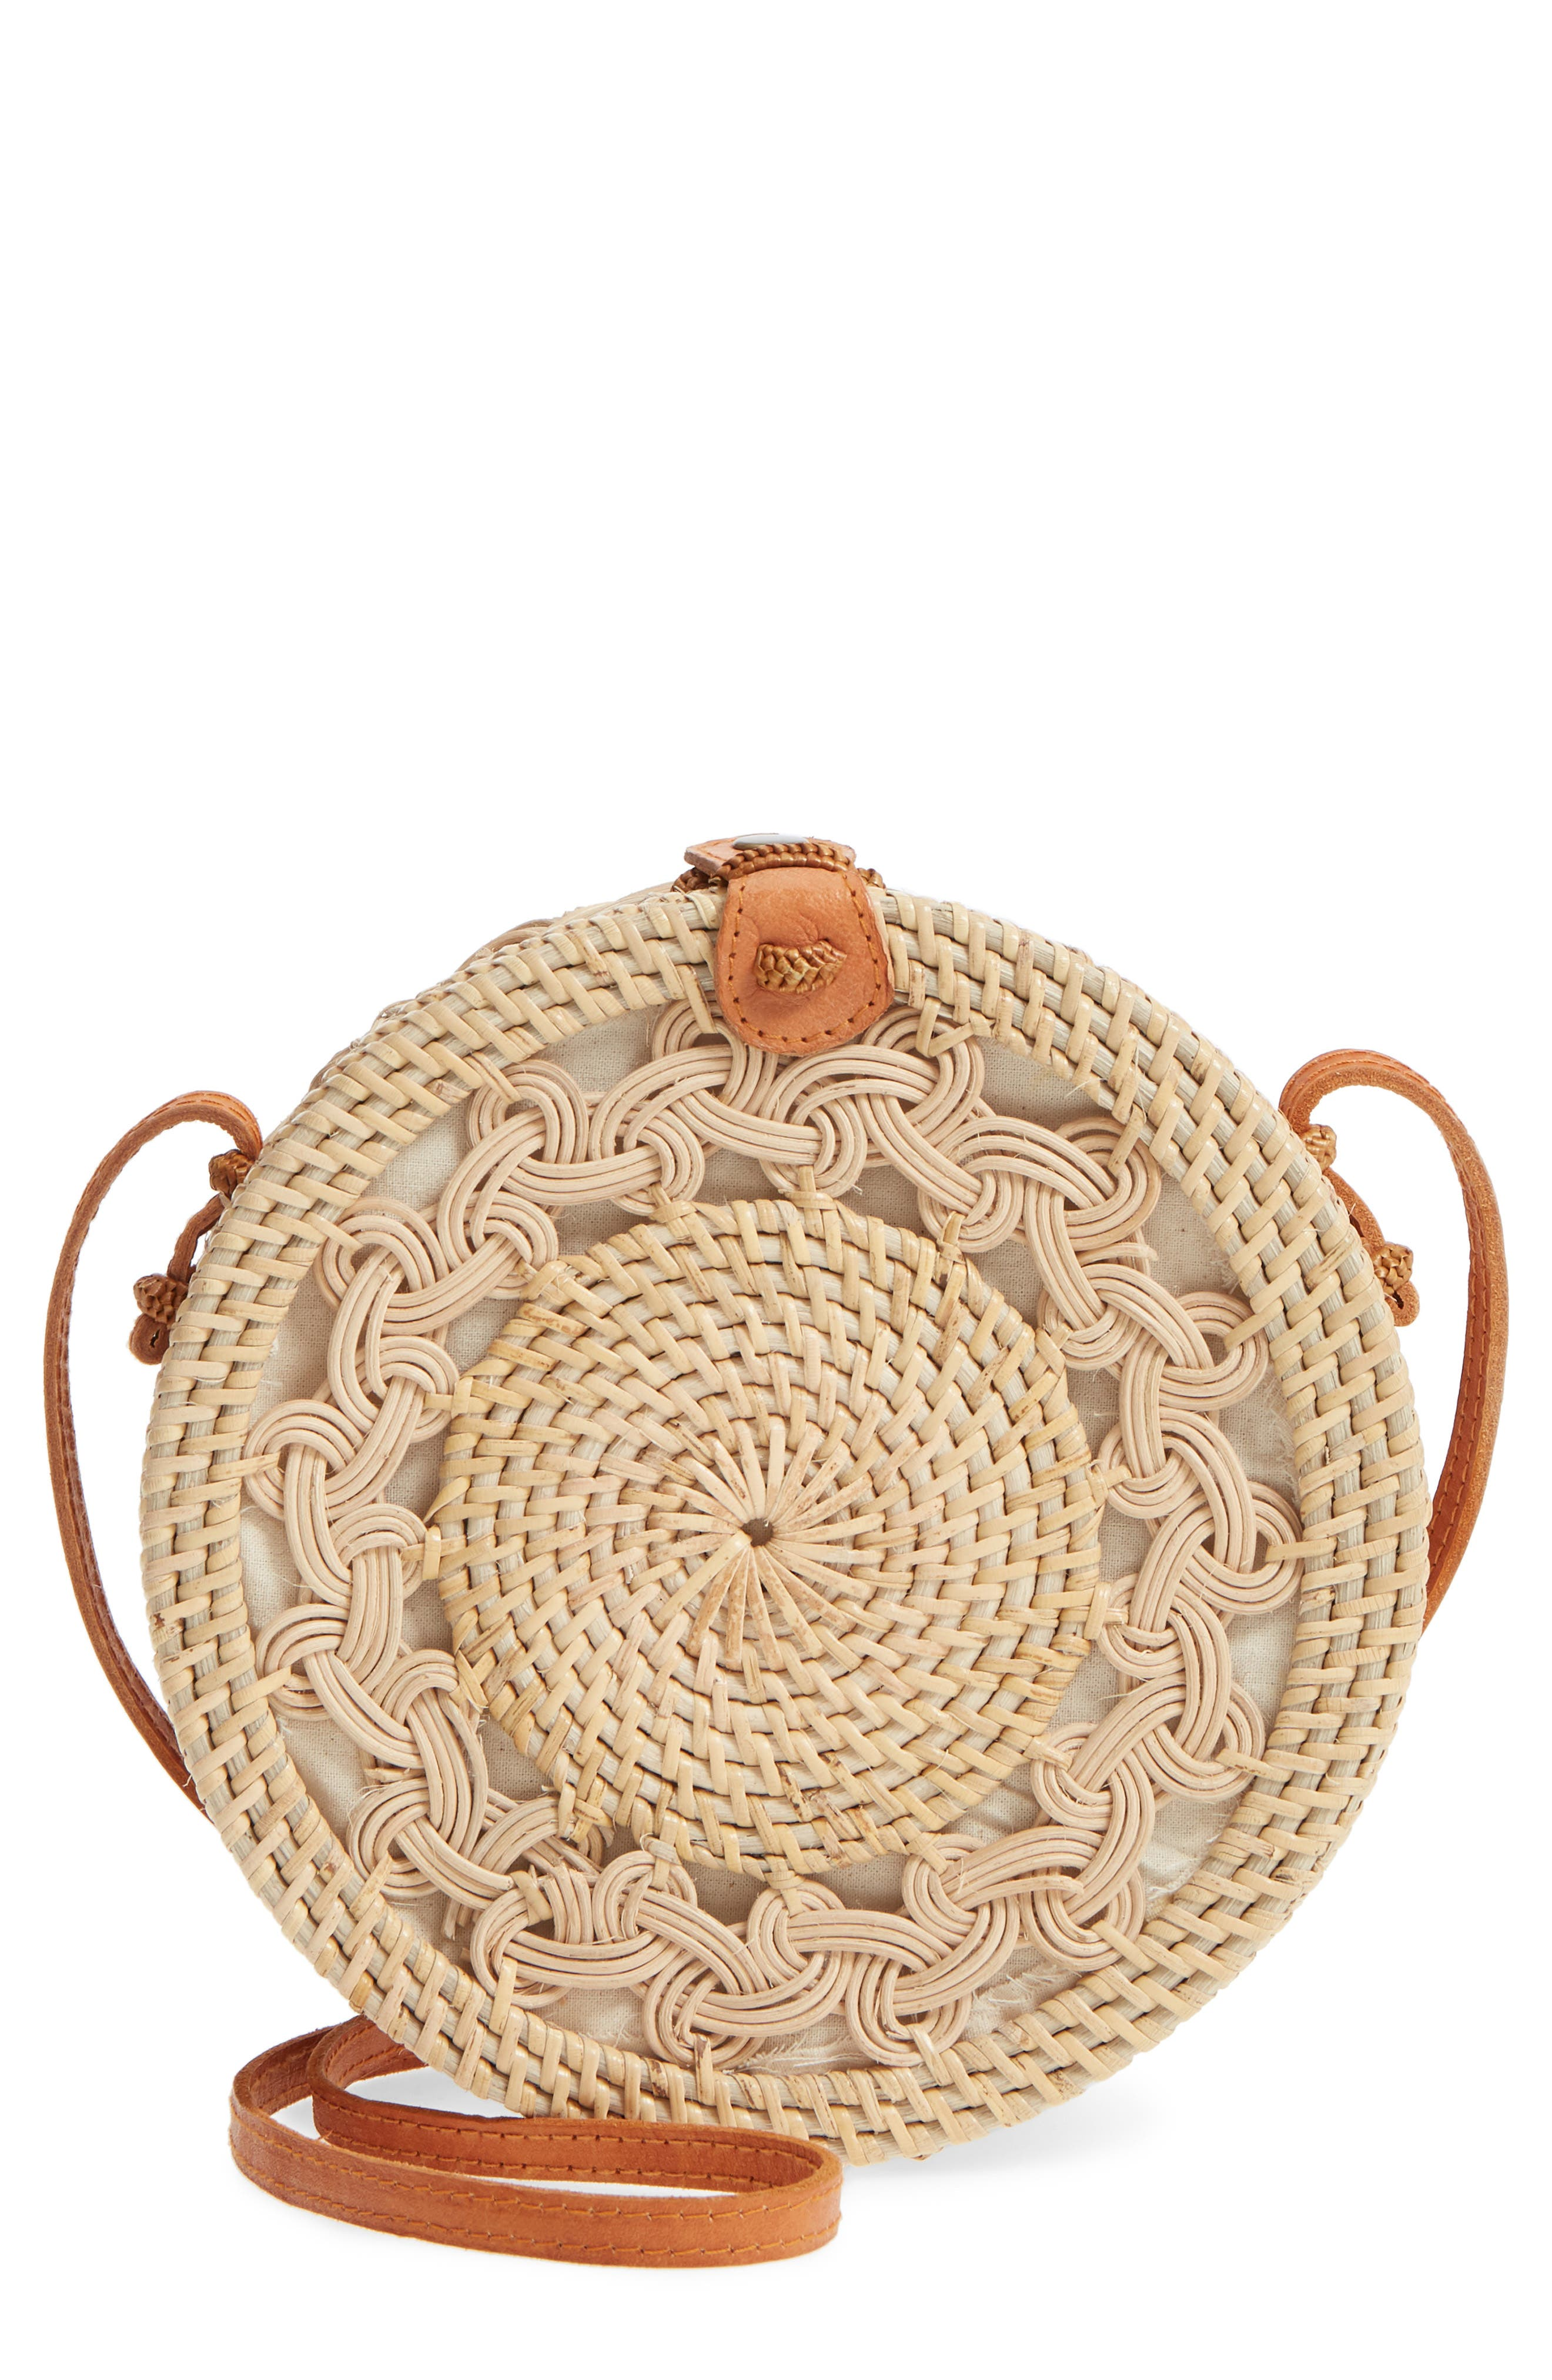 Woven Rattan Circle Crossbody Bag,                         Main,                         color, LIGHTER TAN/ NATURAL